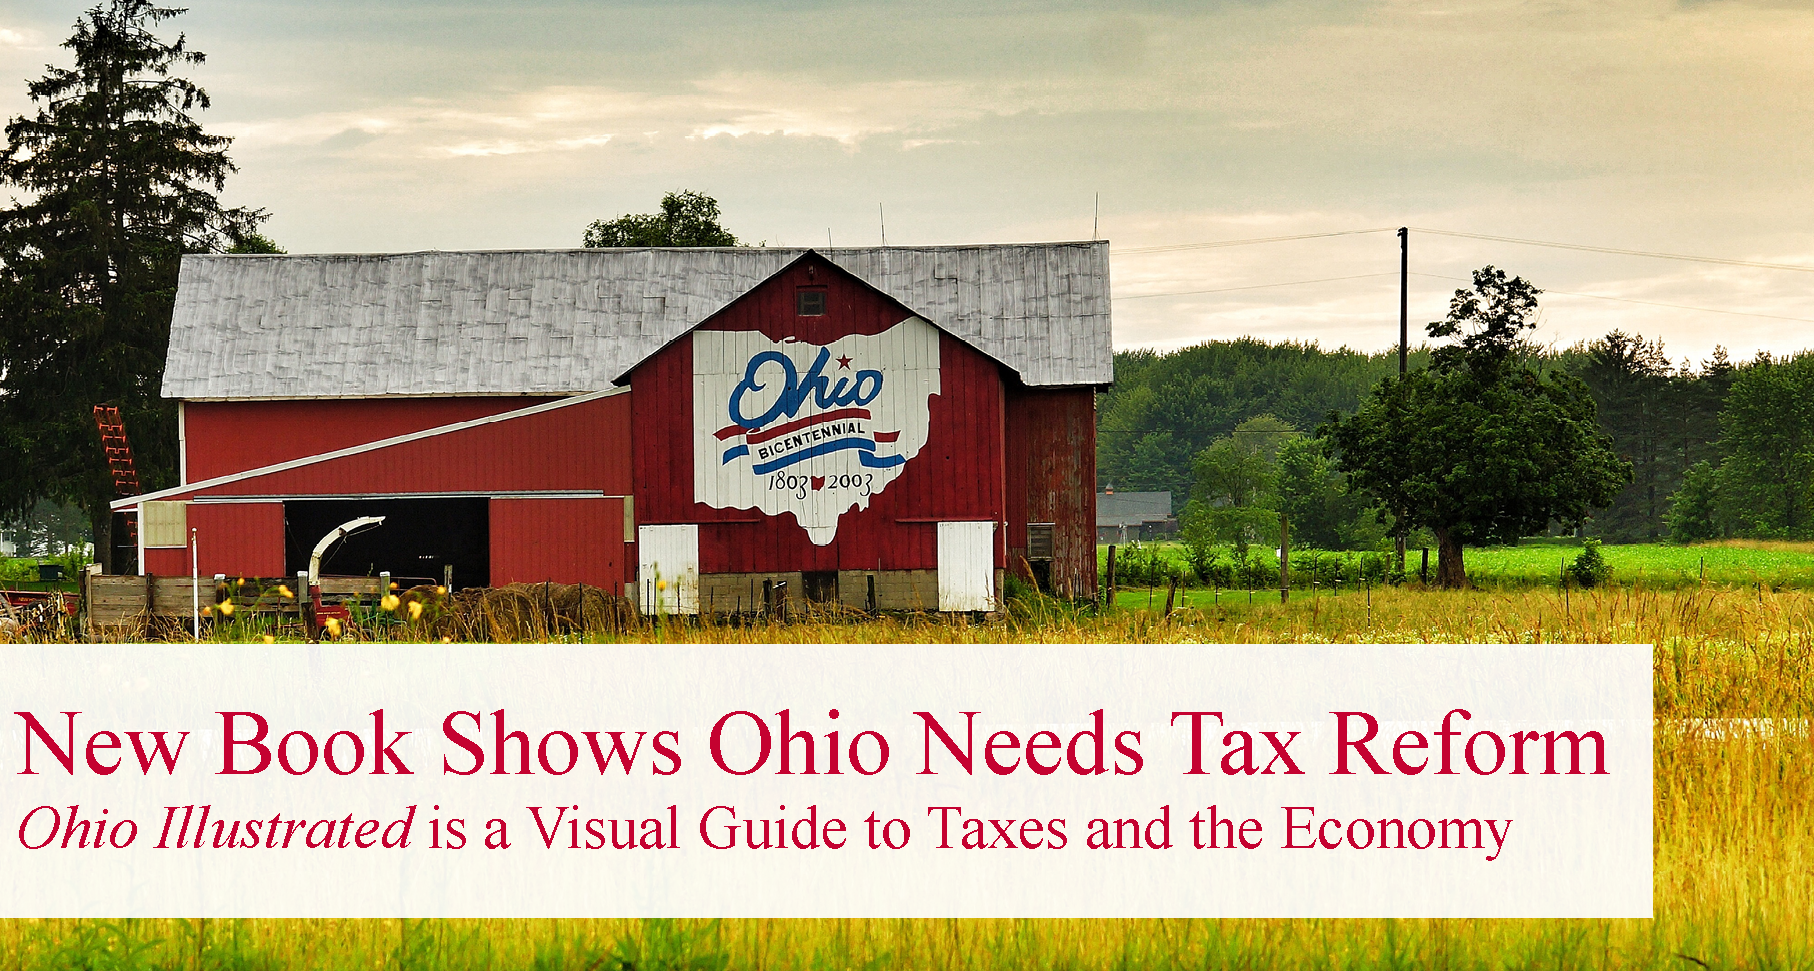 New Buckeye Institute and Tax Foundation Book Illustrates That Ohio's Tax System is in Need of Reform